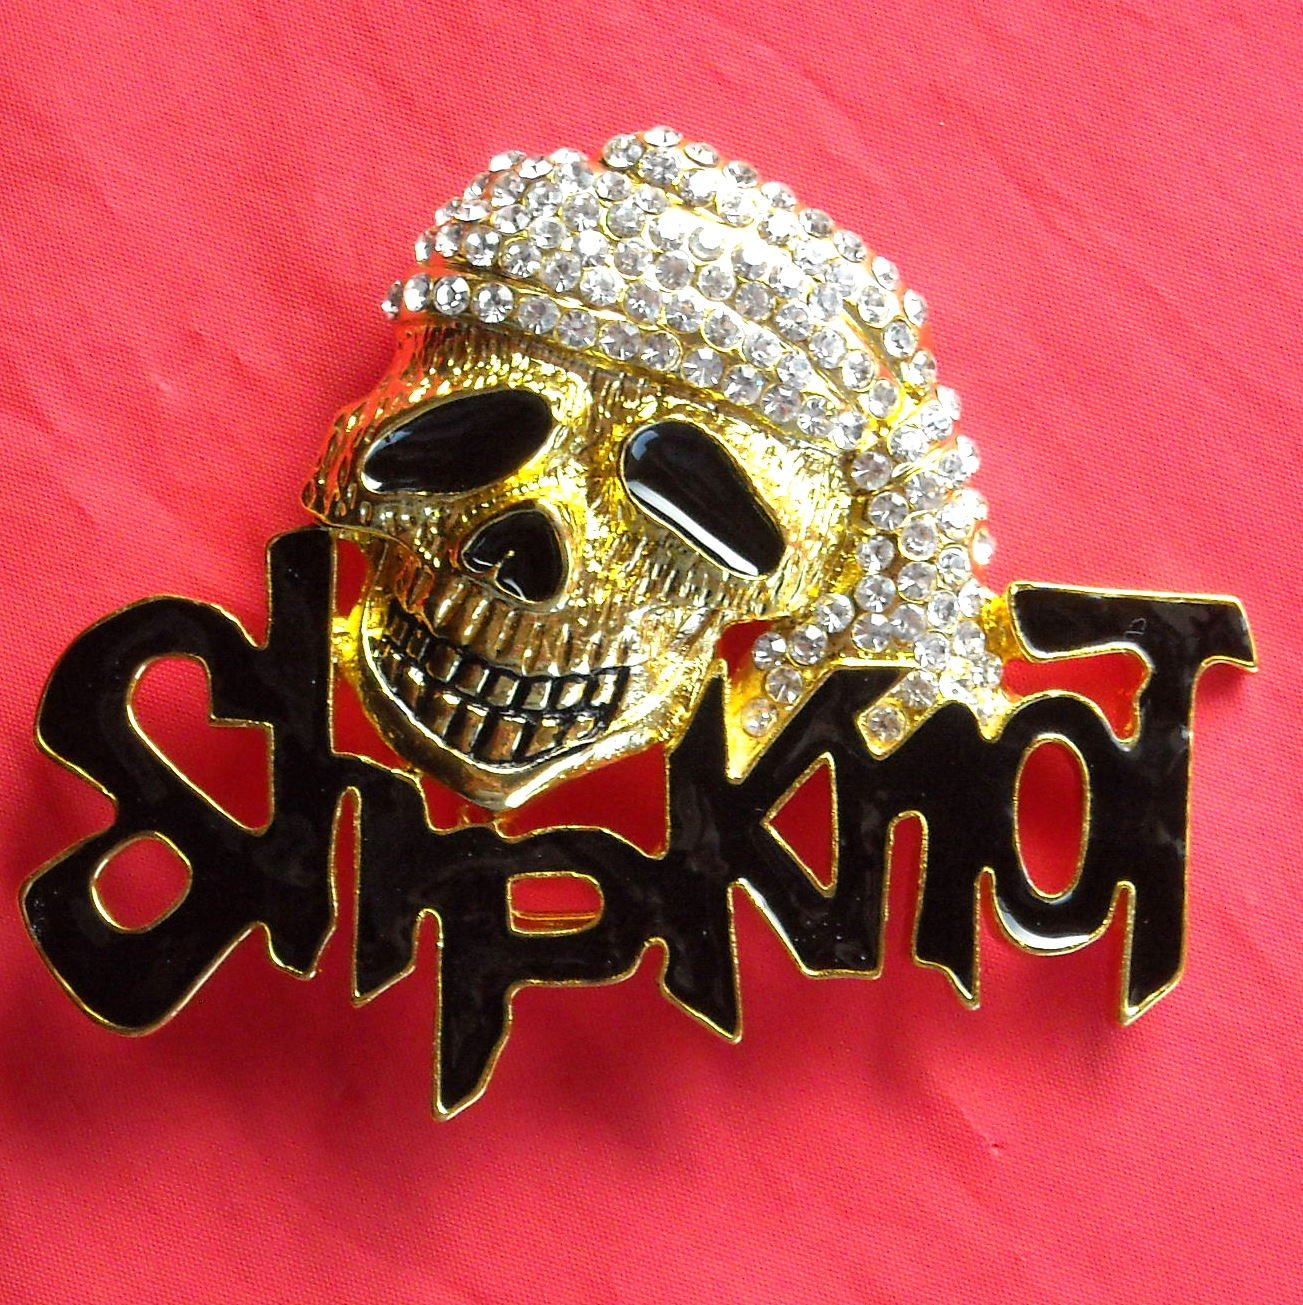 Pirate Skull with Rhinestone metal Brass color belt buckle